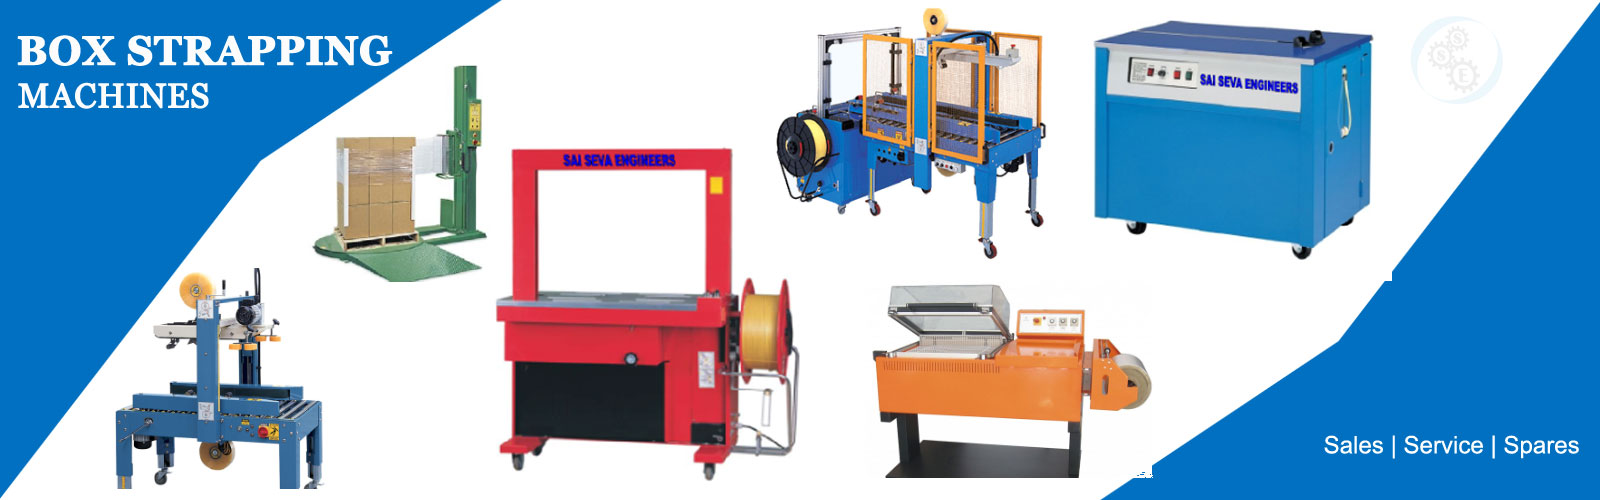 box stripping machine_sai_seva_engineers